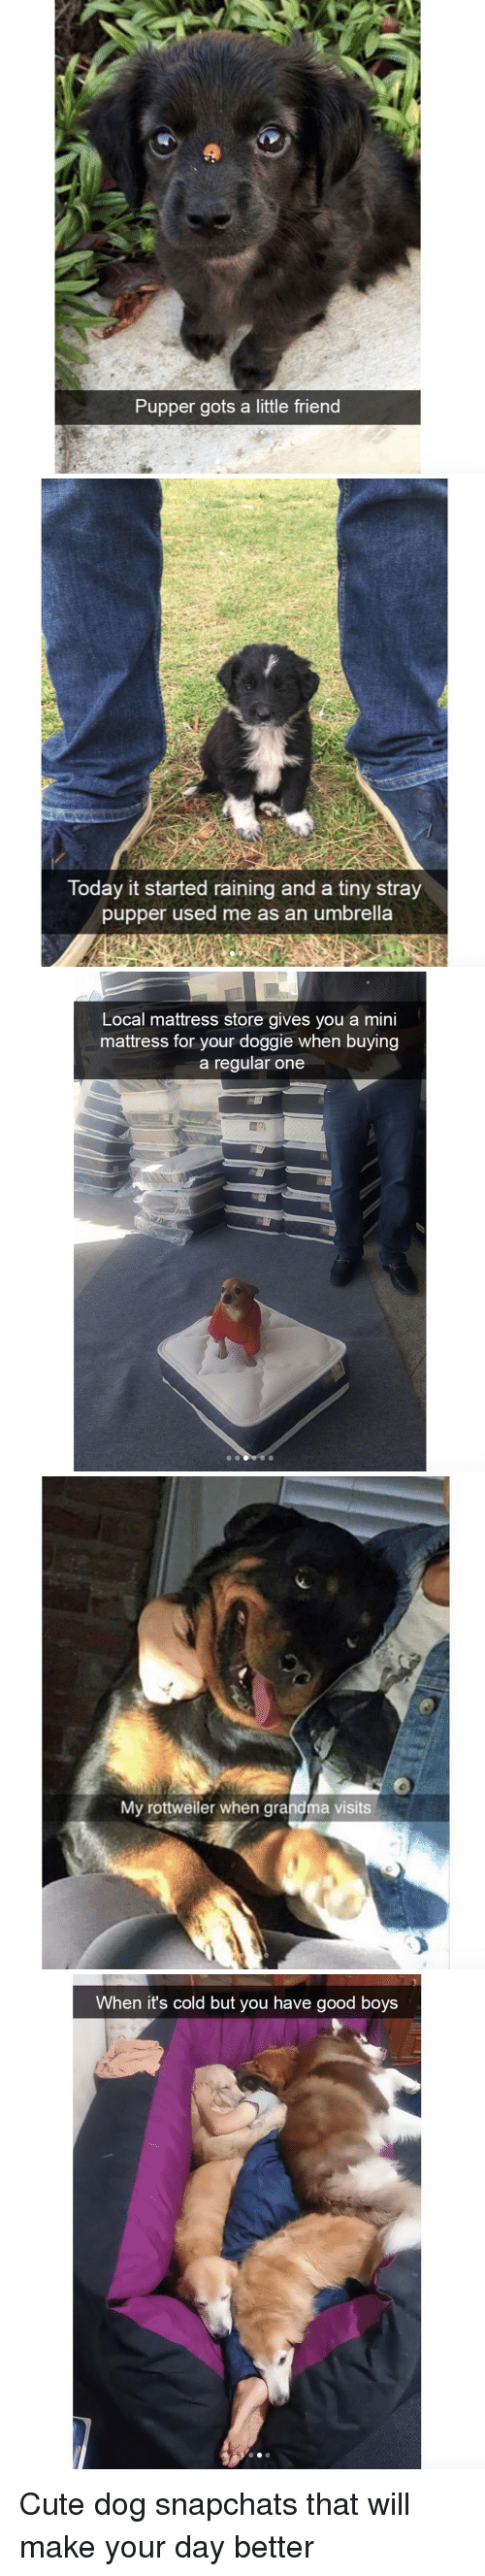 gots: Pupper gots a little friend   Today it started raining and a tiny stray  pupper used me as an umbrella   Local mattress store gives you a mini  mattress for your doggie when buying  a regular one   My rottweiler when grandma visits   When it's cold but you have good boys <p>Cute dog snapchats that will make your day better<br/></p>